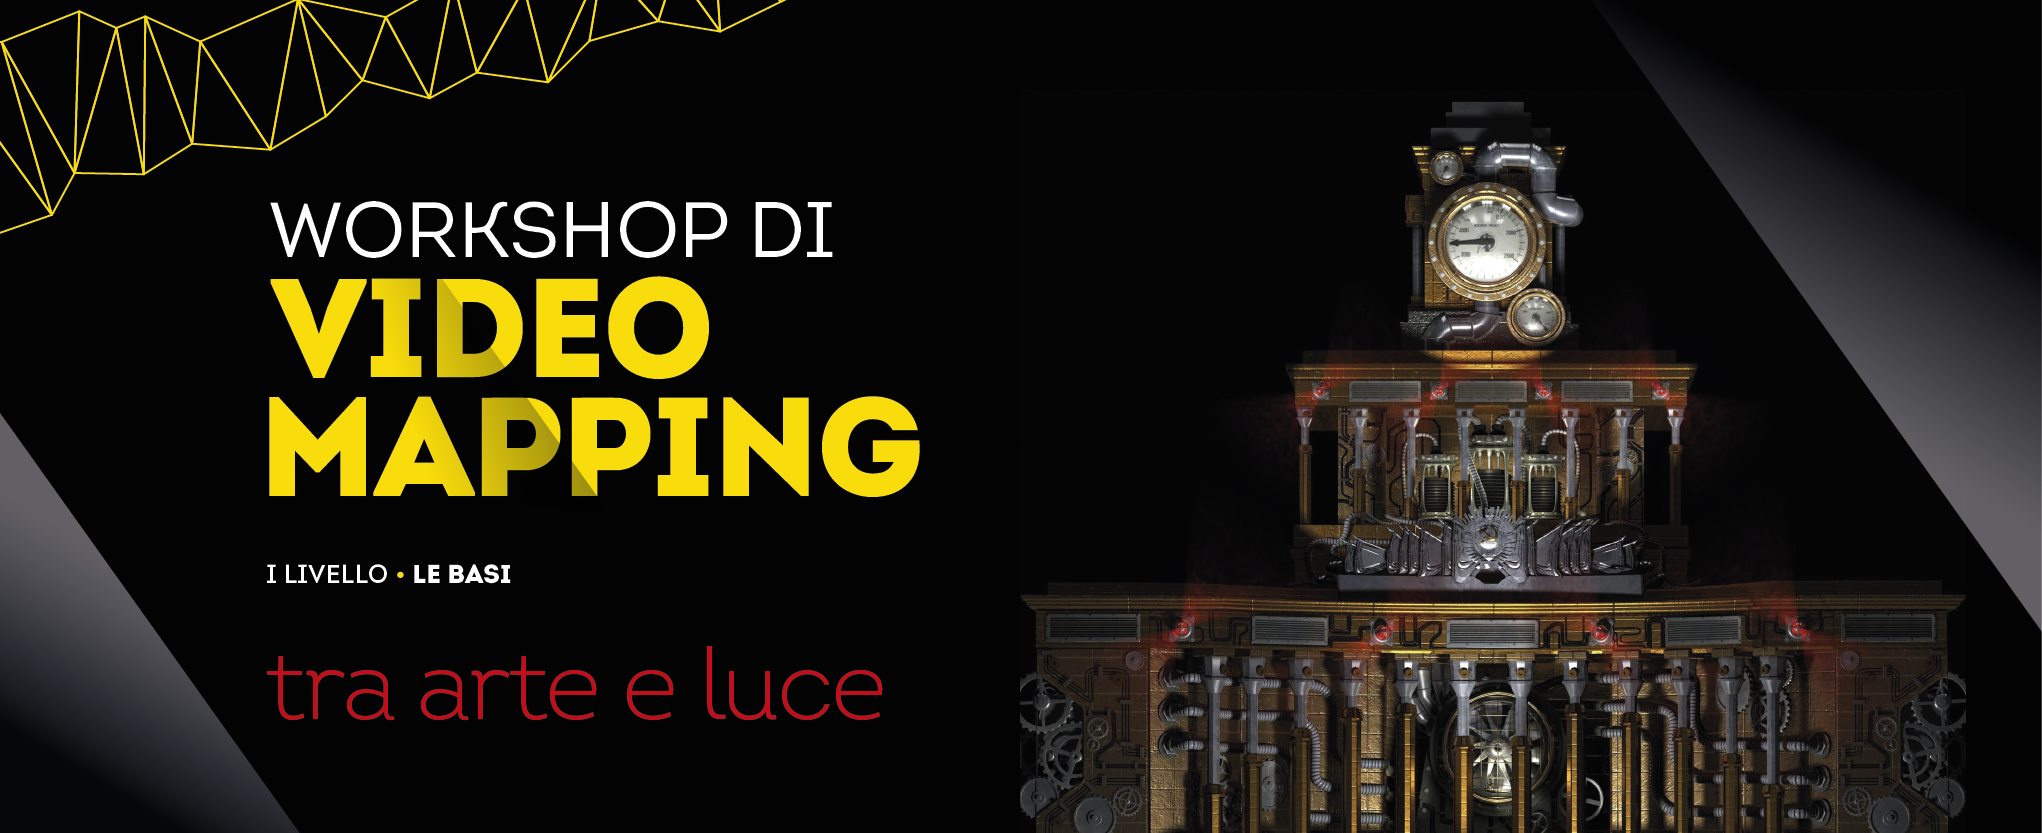 slide-videomapping-x-sito